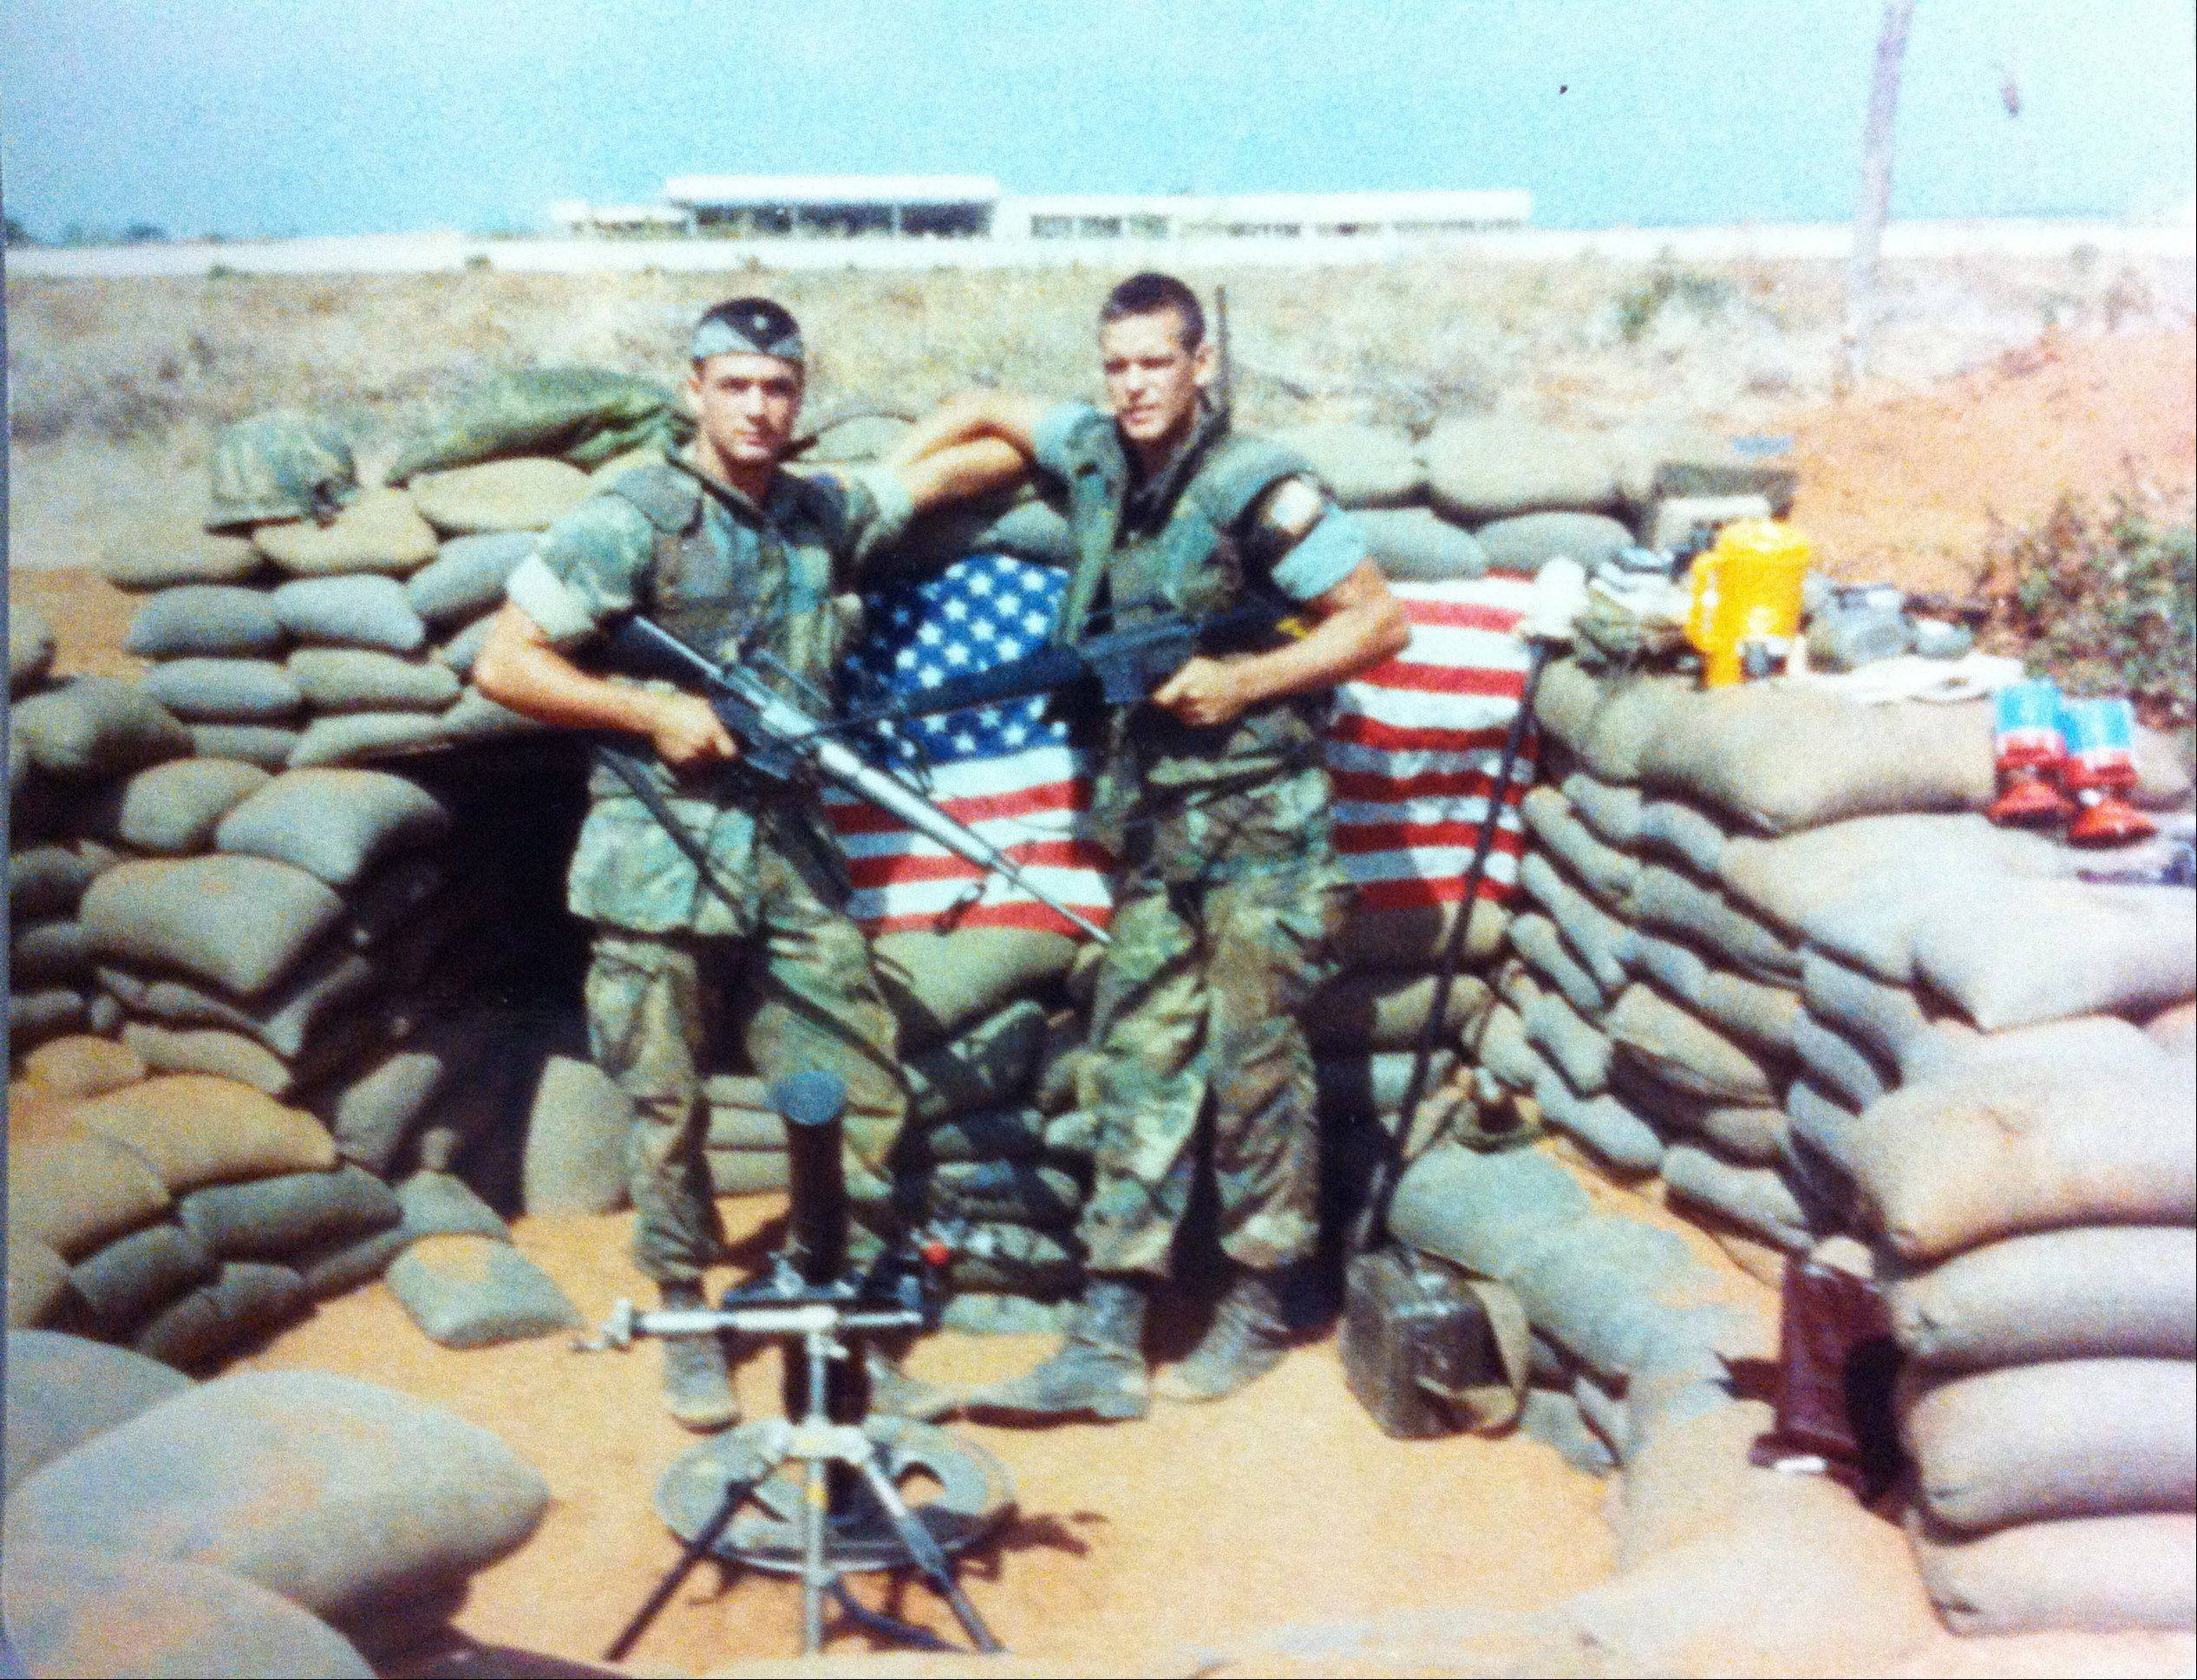 U.S. Marines PFC John Sexton, left, and Lance Cpl. Randy Lund manning a mortar pit on the perimeter of the Beirut International Airport in 1983.